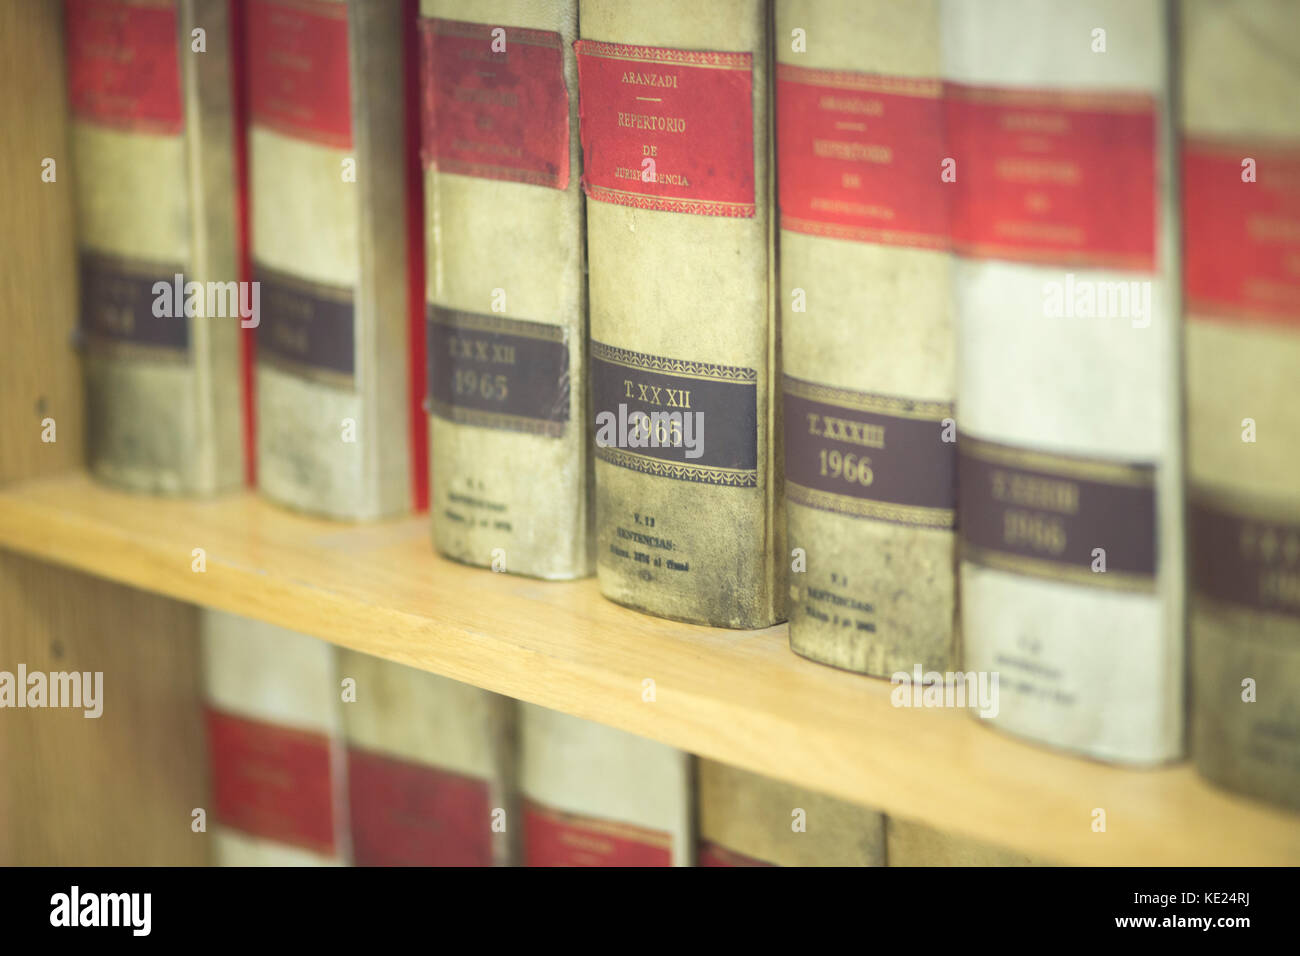 Law Firm Offices Old Legal Report Books On Bookshelf The Book Models Are And Generic Do Not Require Property Release